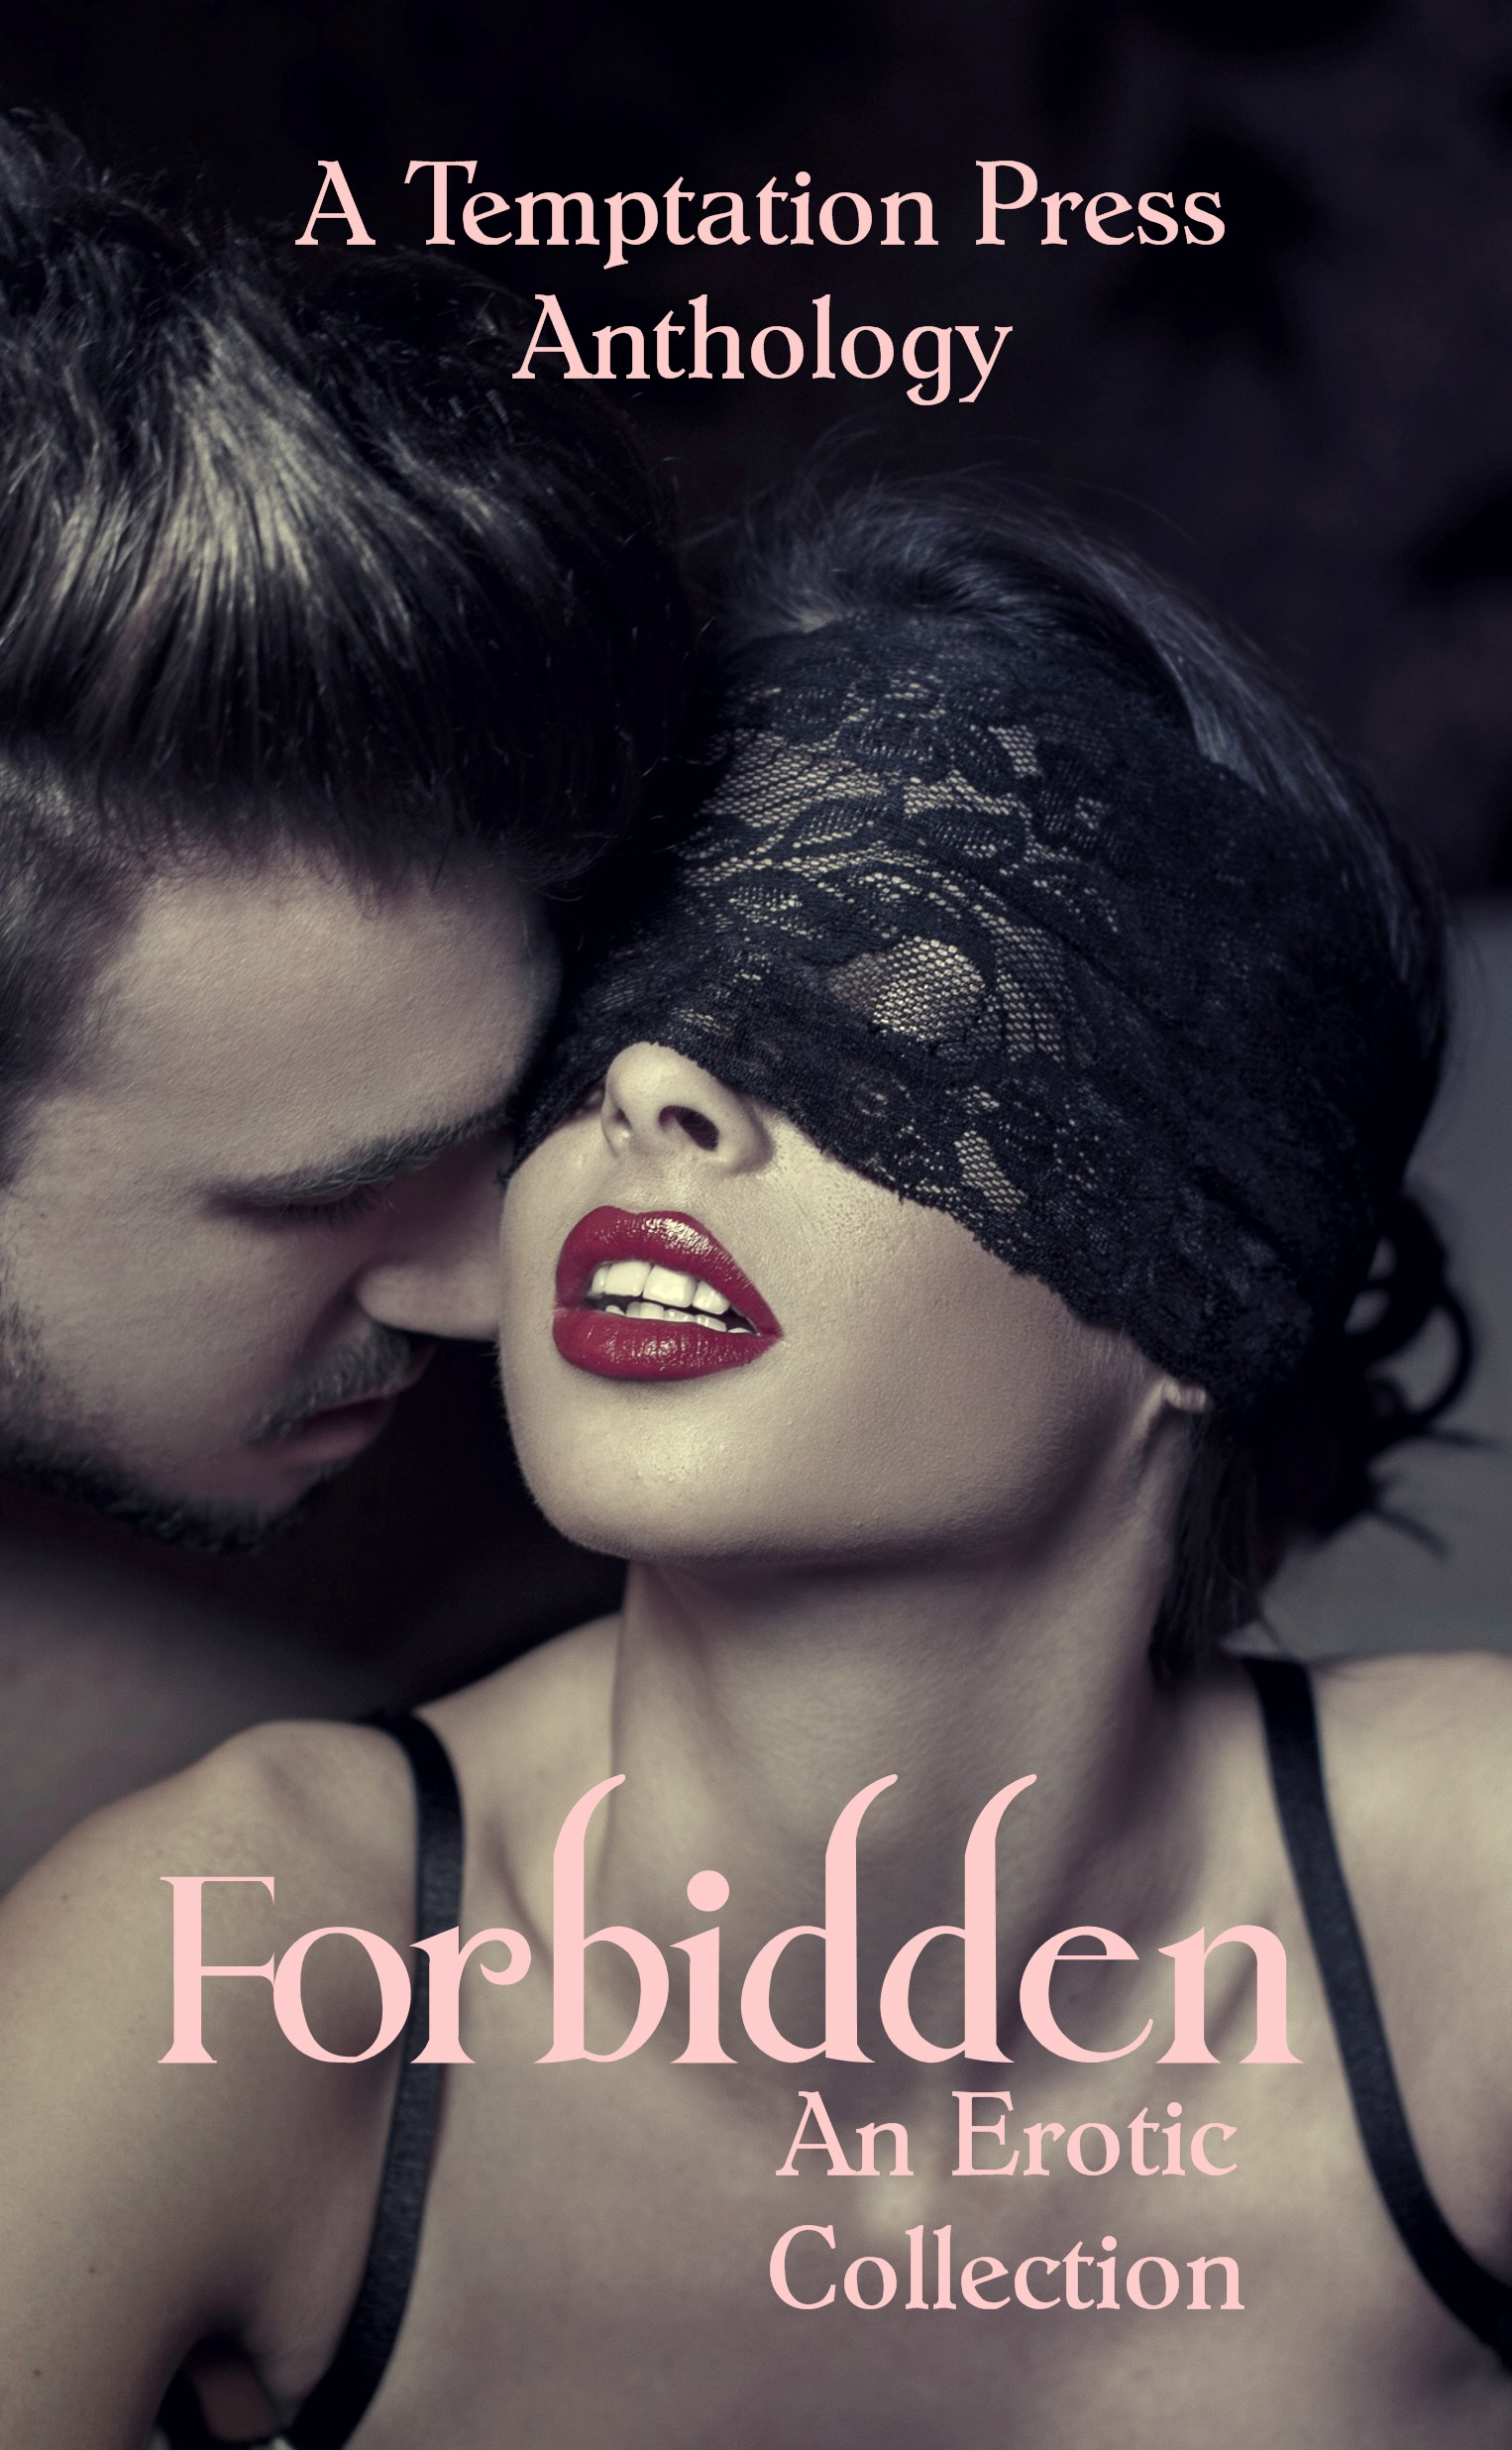 A Collection Of Erotic Short Stories